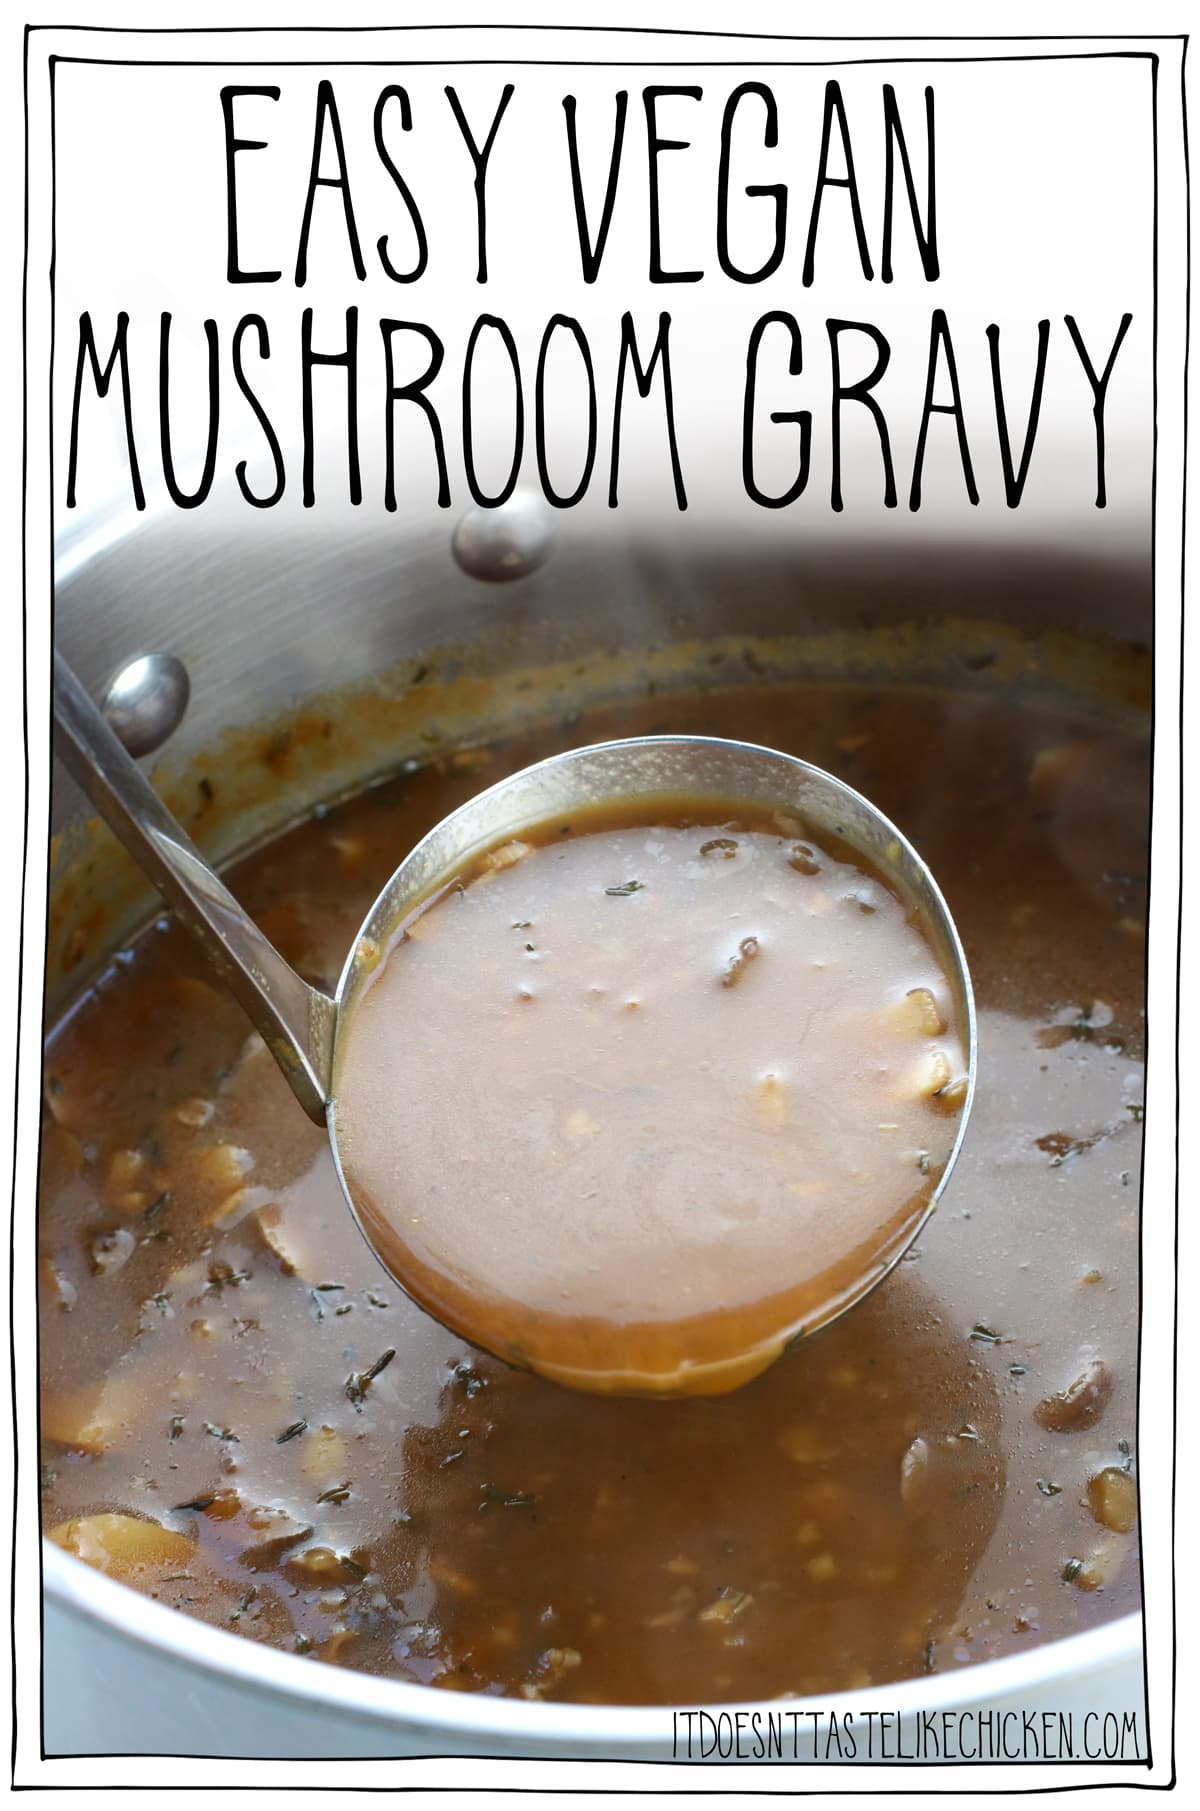 Easy Vegan Mushroom Gravy! 9 easy ingredients, use any mushroom you like, make ahead of time, rich, umami-packed, the perfect sauce to add oomph to your meal. Great for Thanksgiving or Christmas. Gluten-free option. #itdoesnttastelikechicken #veganrecipes